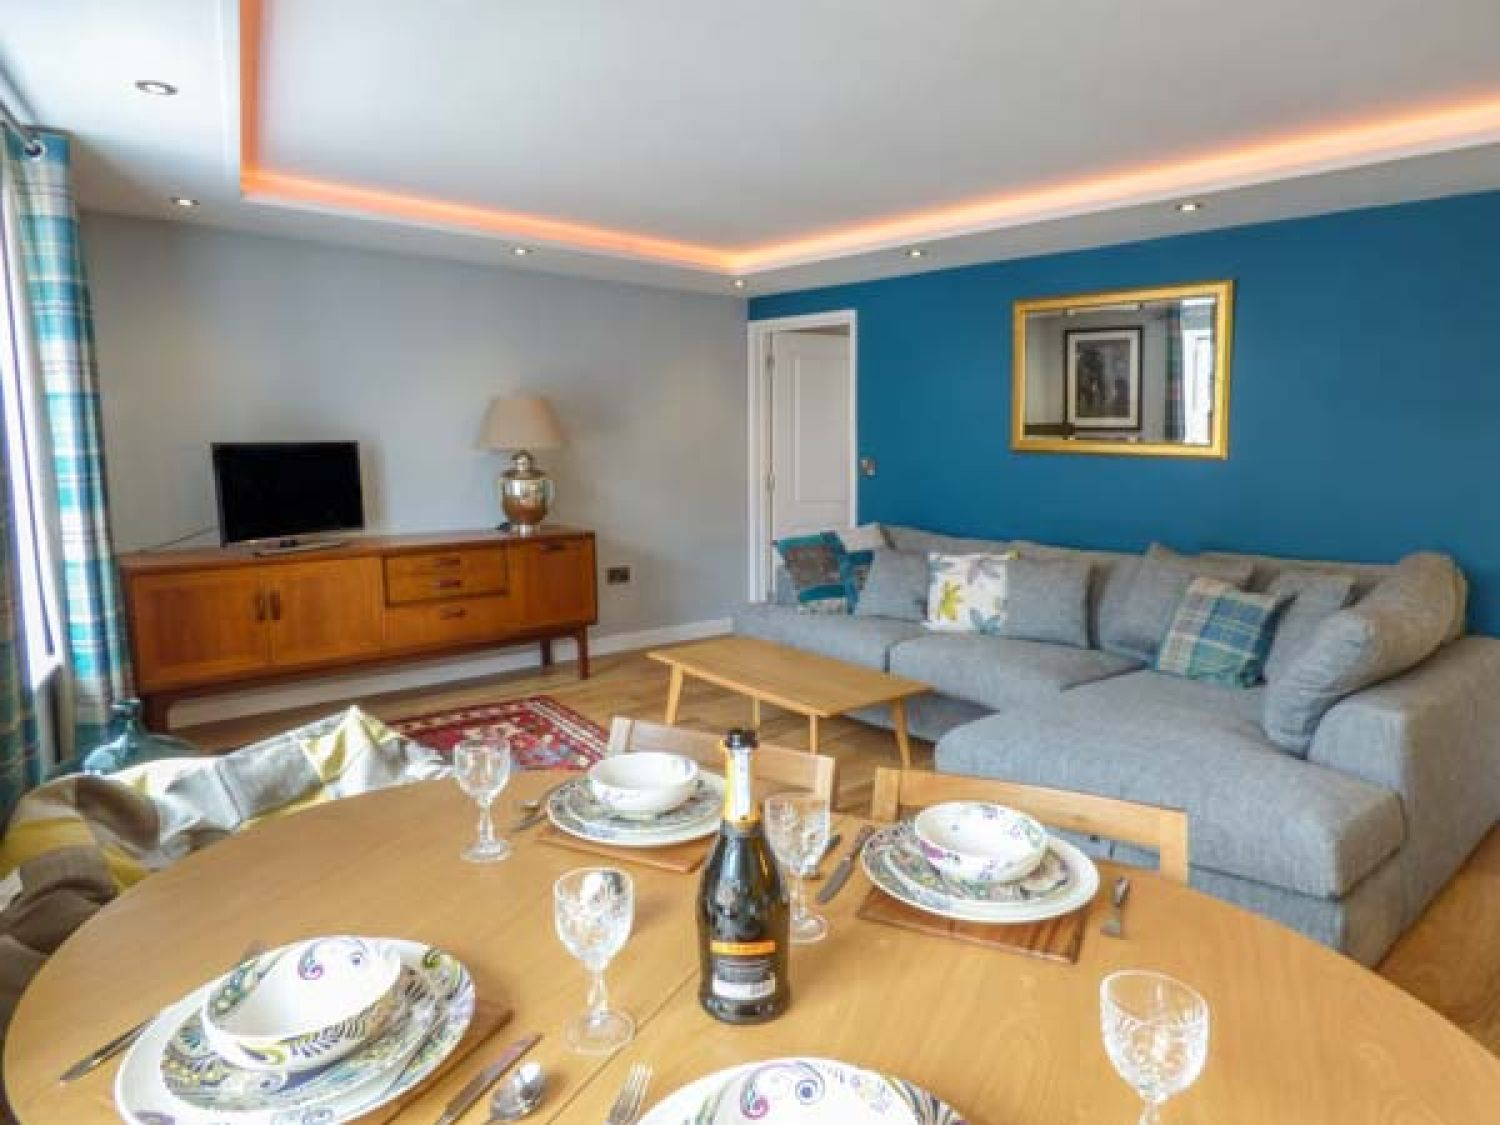 Picadore in Scarborough - sleeps 4 people